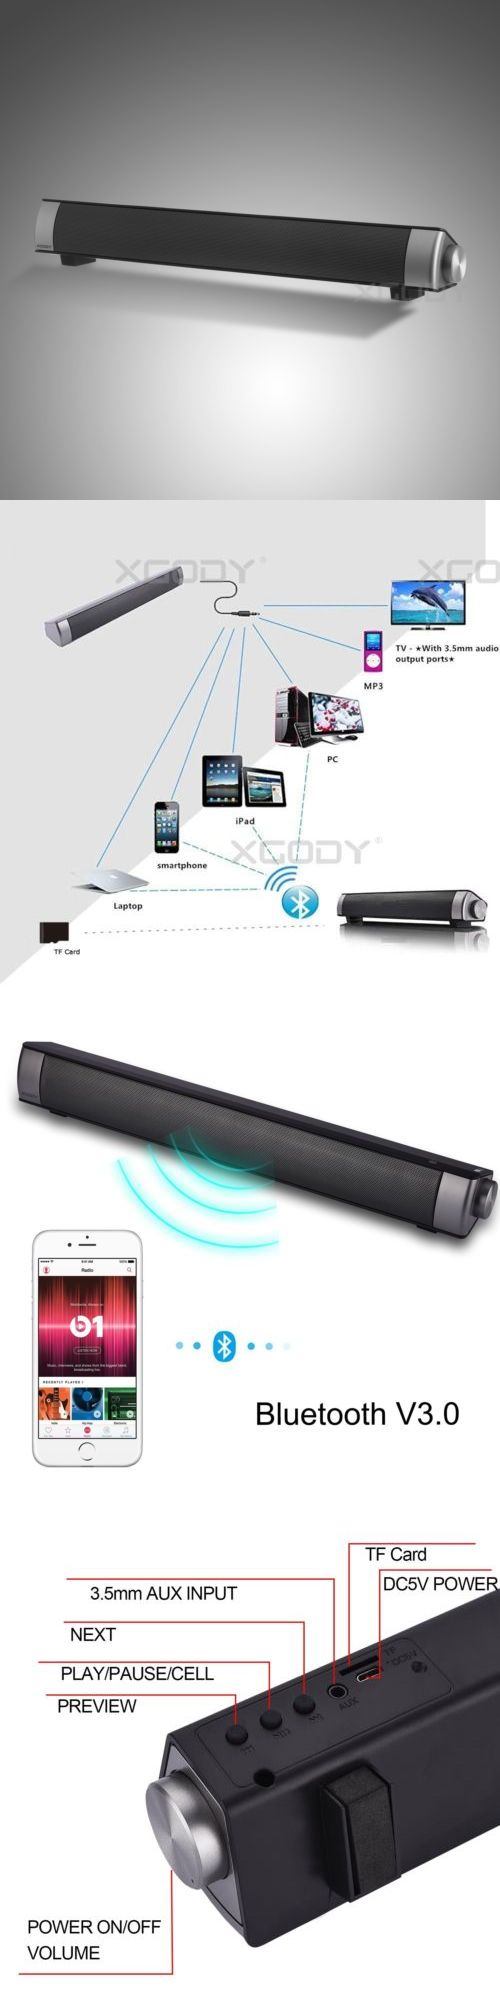 Home Speakers and Subwoofers: Bluetooth Wireless Home Theater Speaker System Tv Speakers Sound Bar Bluetooth BUY IT NOW ONLY: $34.99